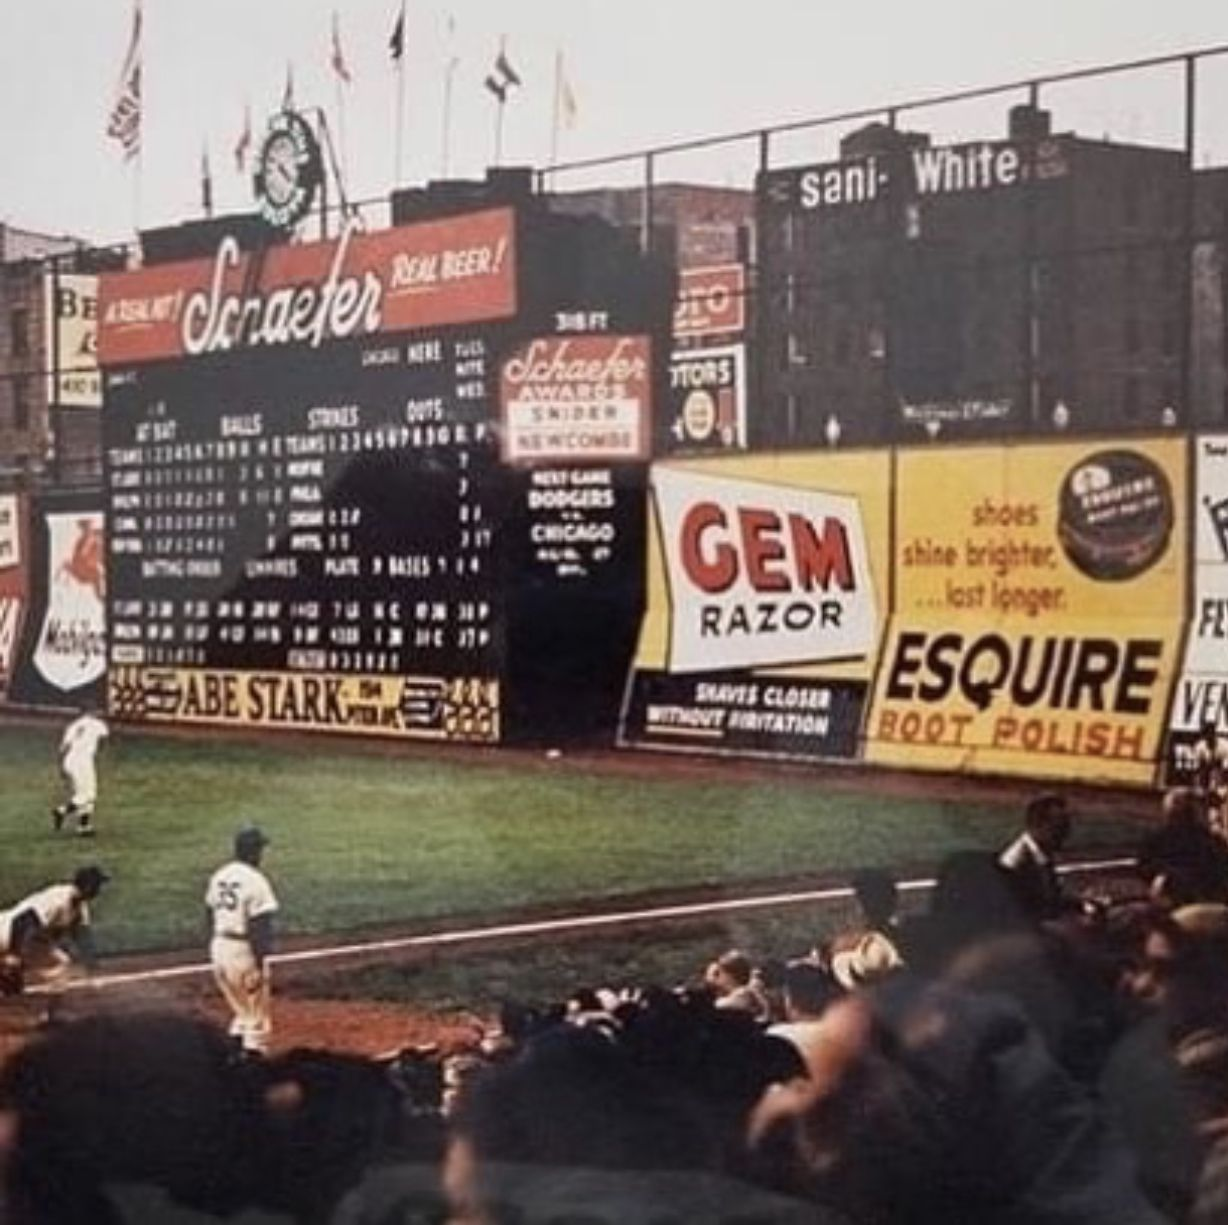 Pin by FrTodd Bragg on Ebbets Field in 2020 Baseball